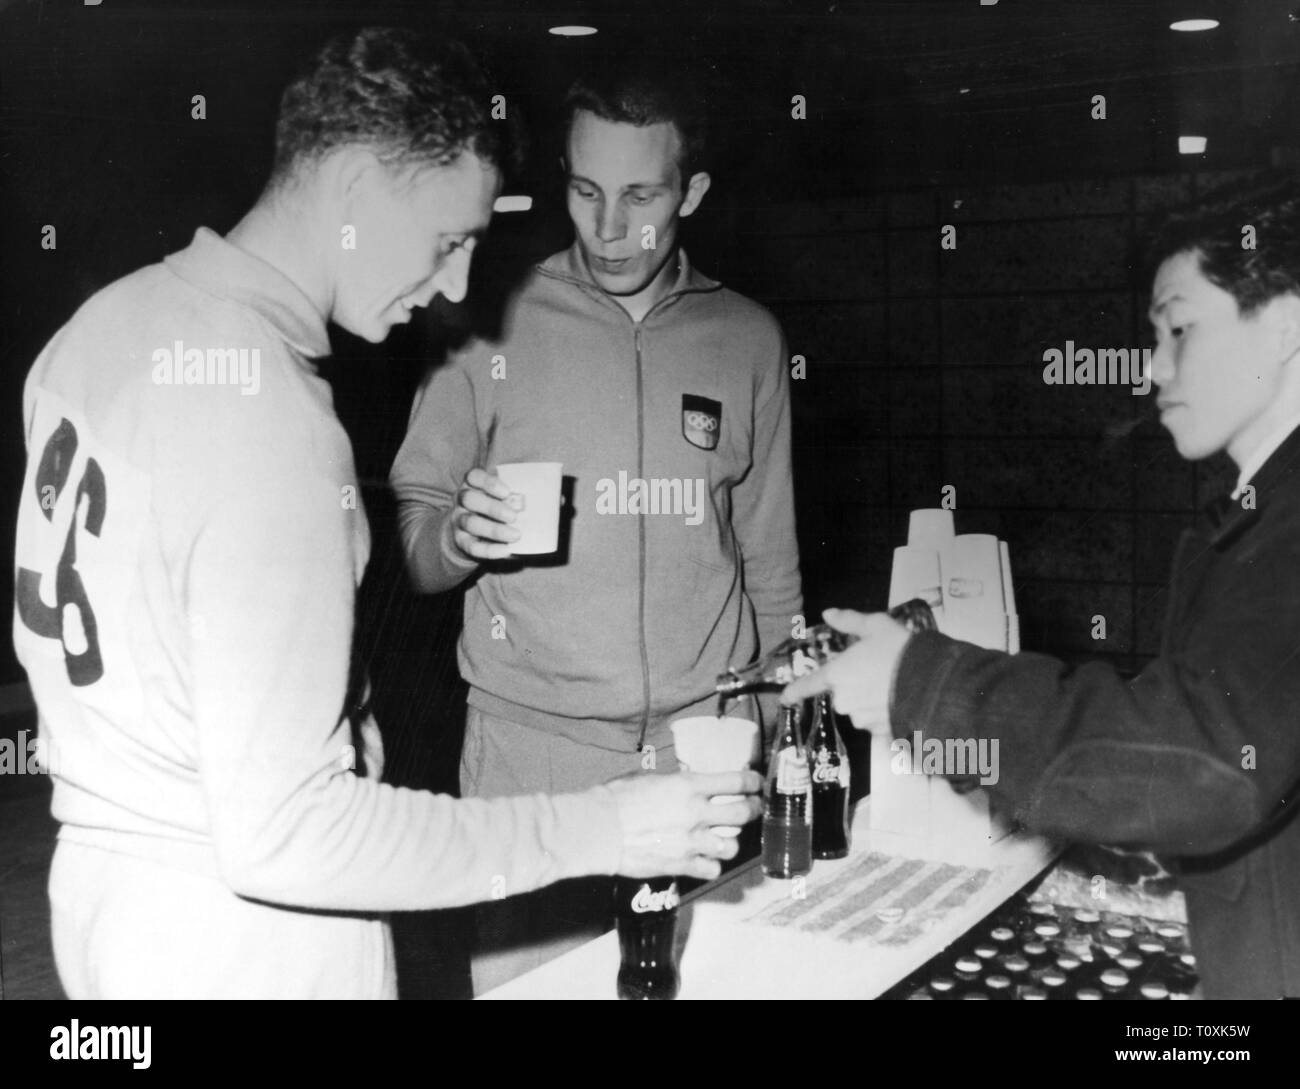 sports, Olympic Games, Tokyo 10.10. - 24.10.1964, Additional-Rights-Clearance-Info-Not-Available - Stock Image